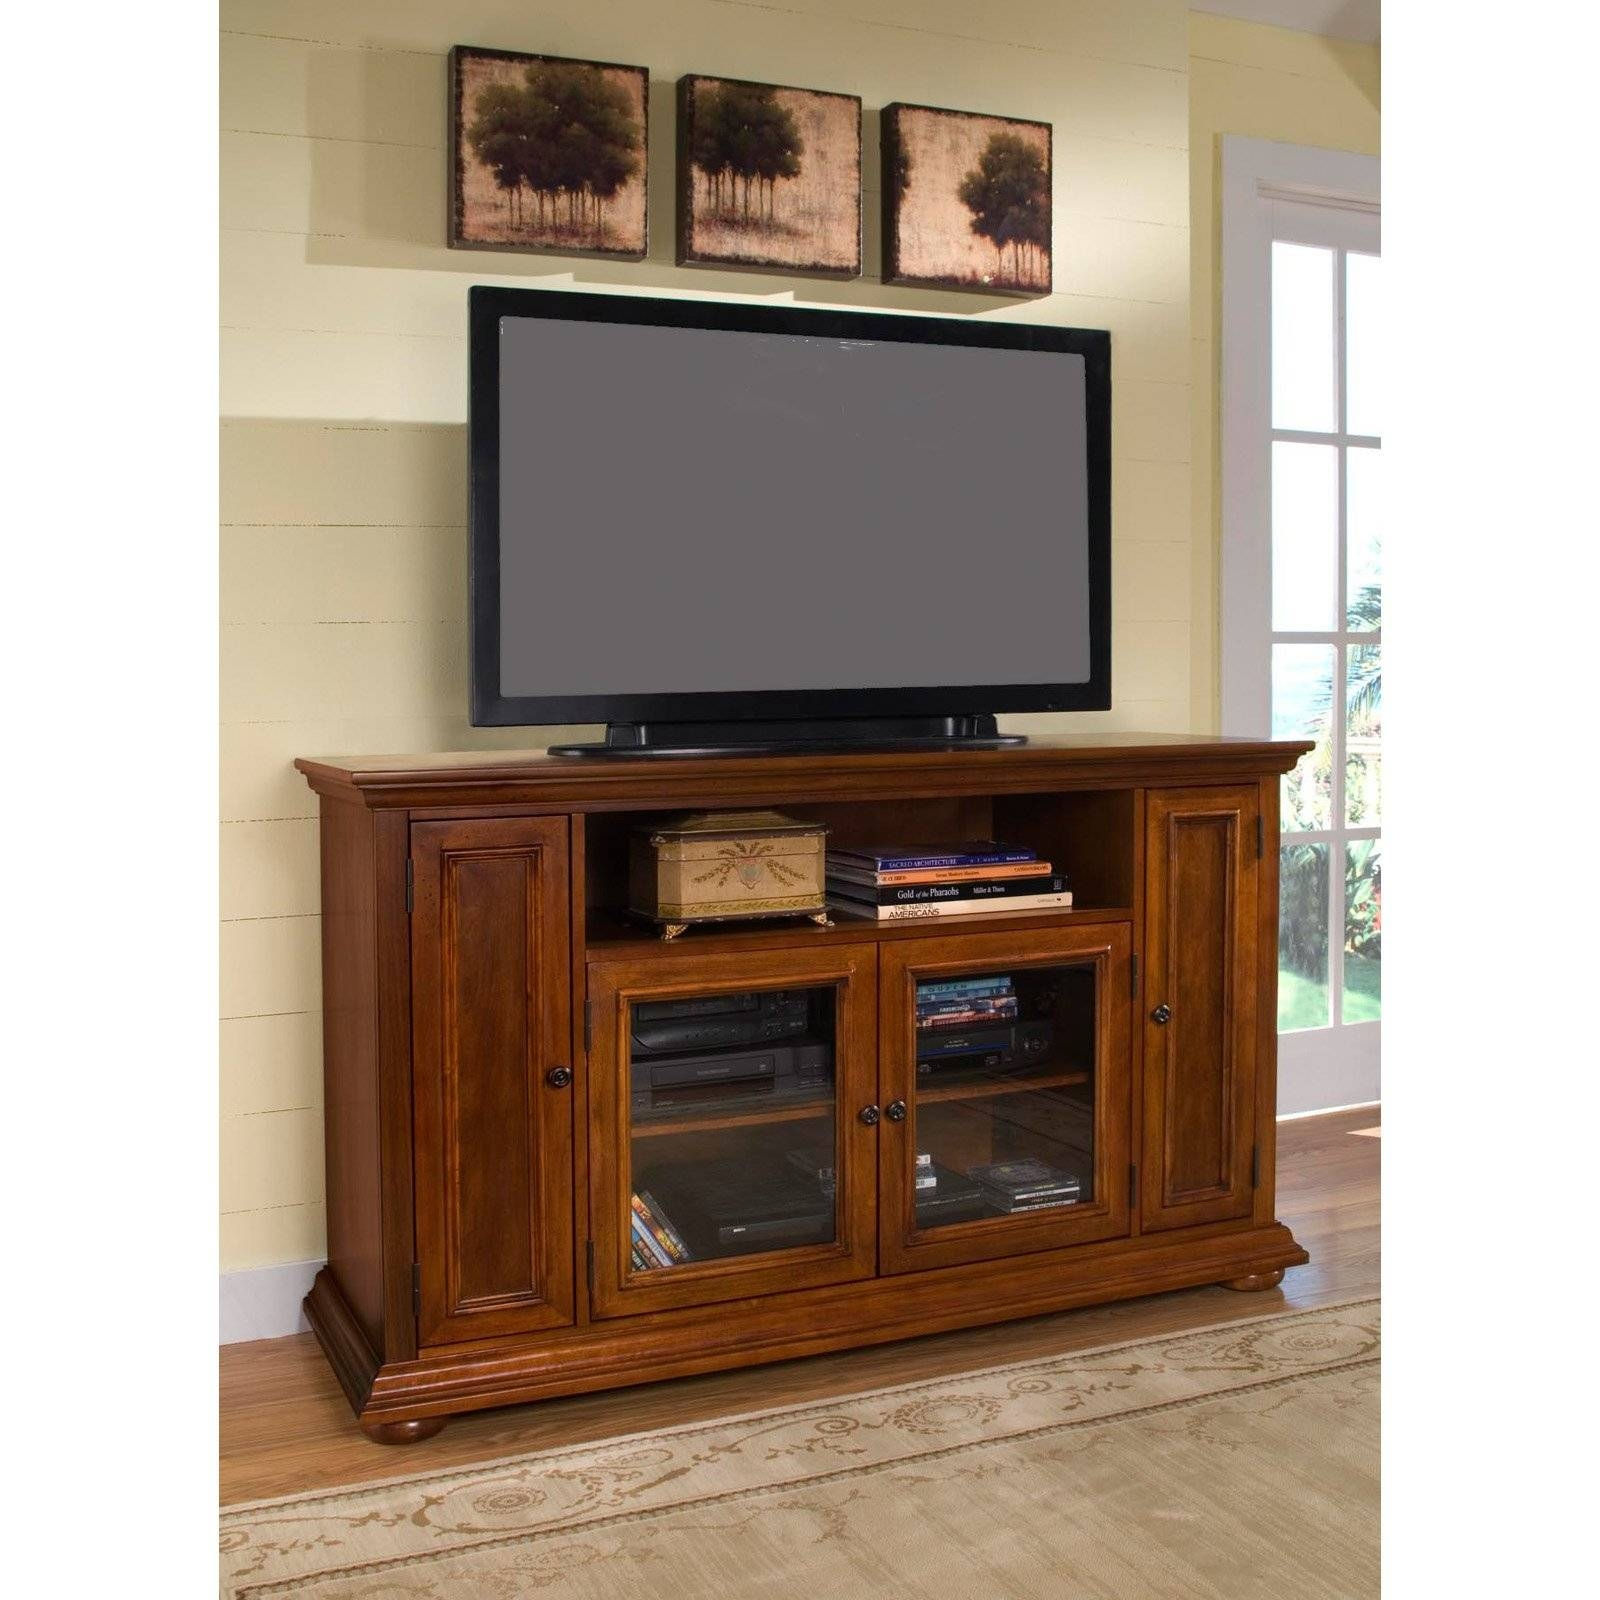 Oak Corner Tv Cabinets For Flat Screens | Memsaheb with Corner Tv Cabinets for Flat Screens With Doors (Image 10 of 15)